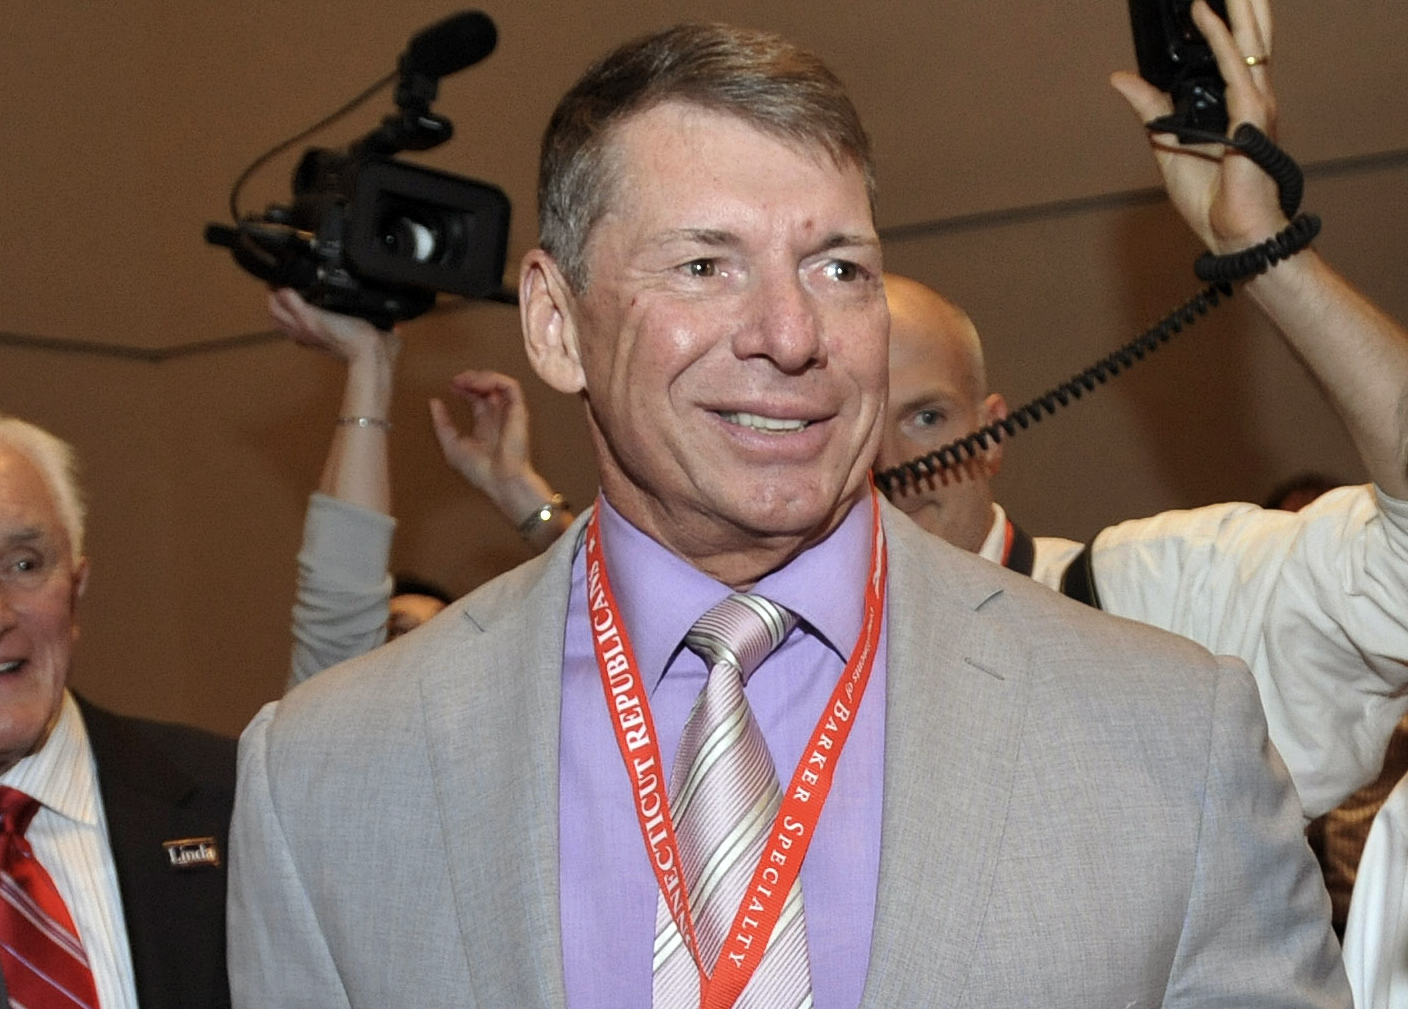 FILE - In this May 21, 2010, file photo, WWE Chairman and Chief Executive Officer Vince McMahon is shown at the Connecticut Republican Convention in Hartford, Conn. WWE announced Thursday, July 31, 2014, a new 10-year partnership with Rogers Communication